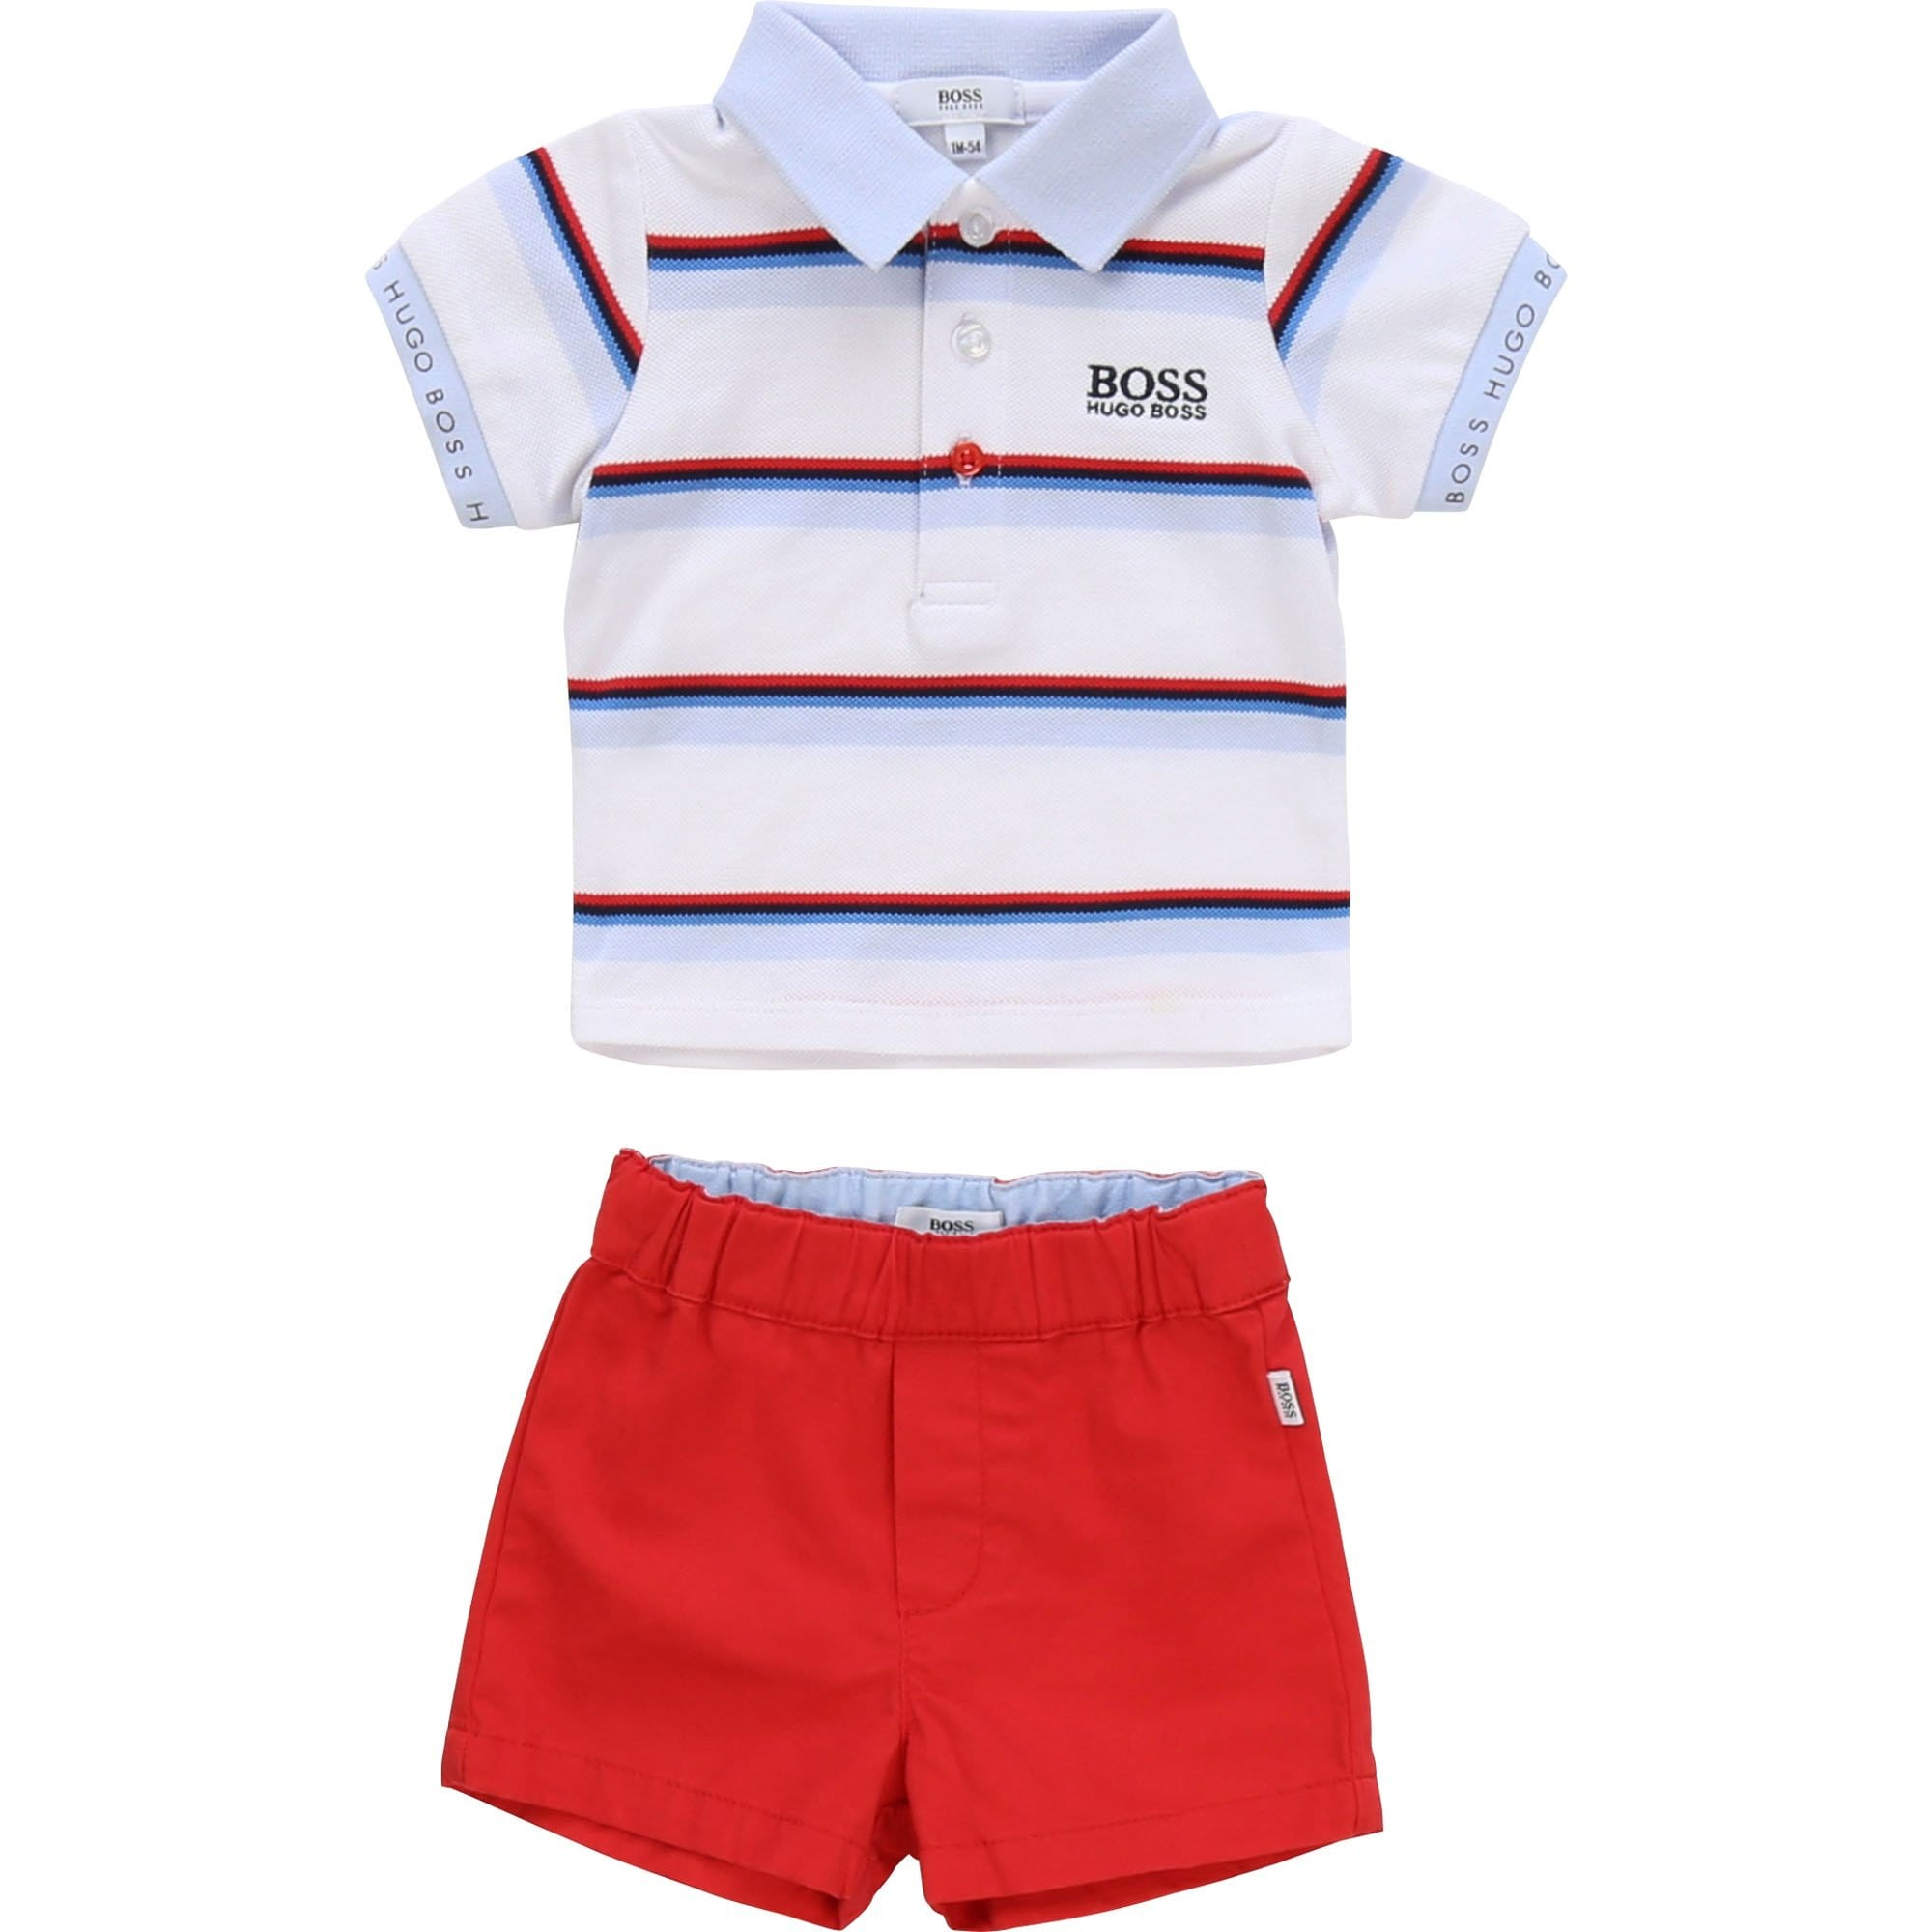 Hugo Boss Polo and Shorts Set J9K063/Z400